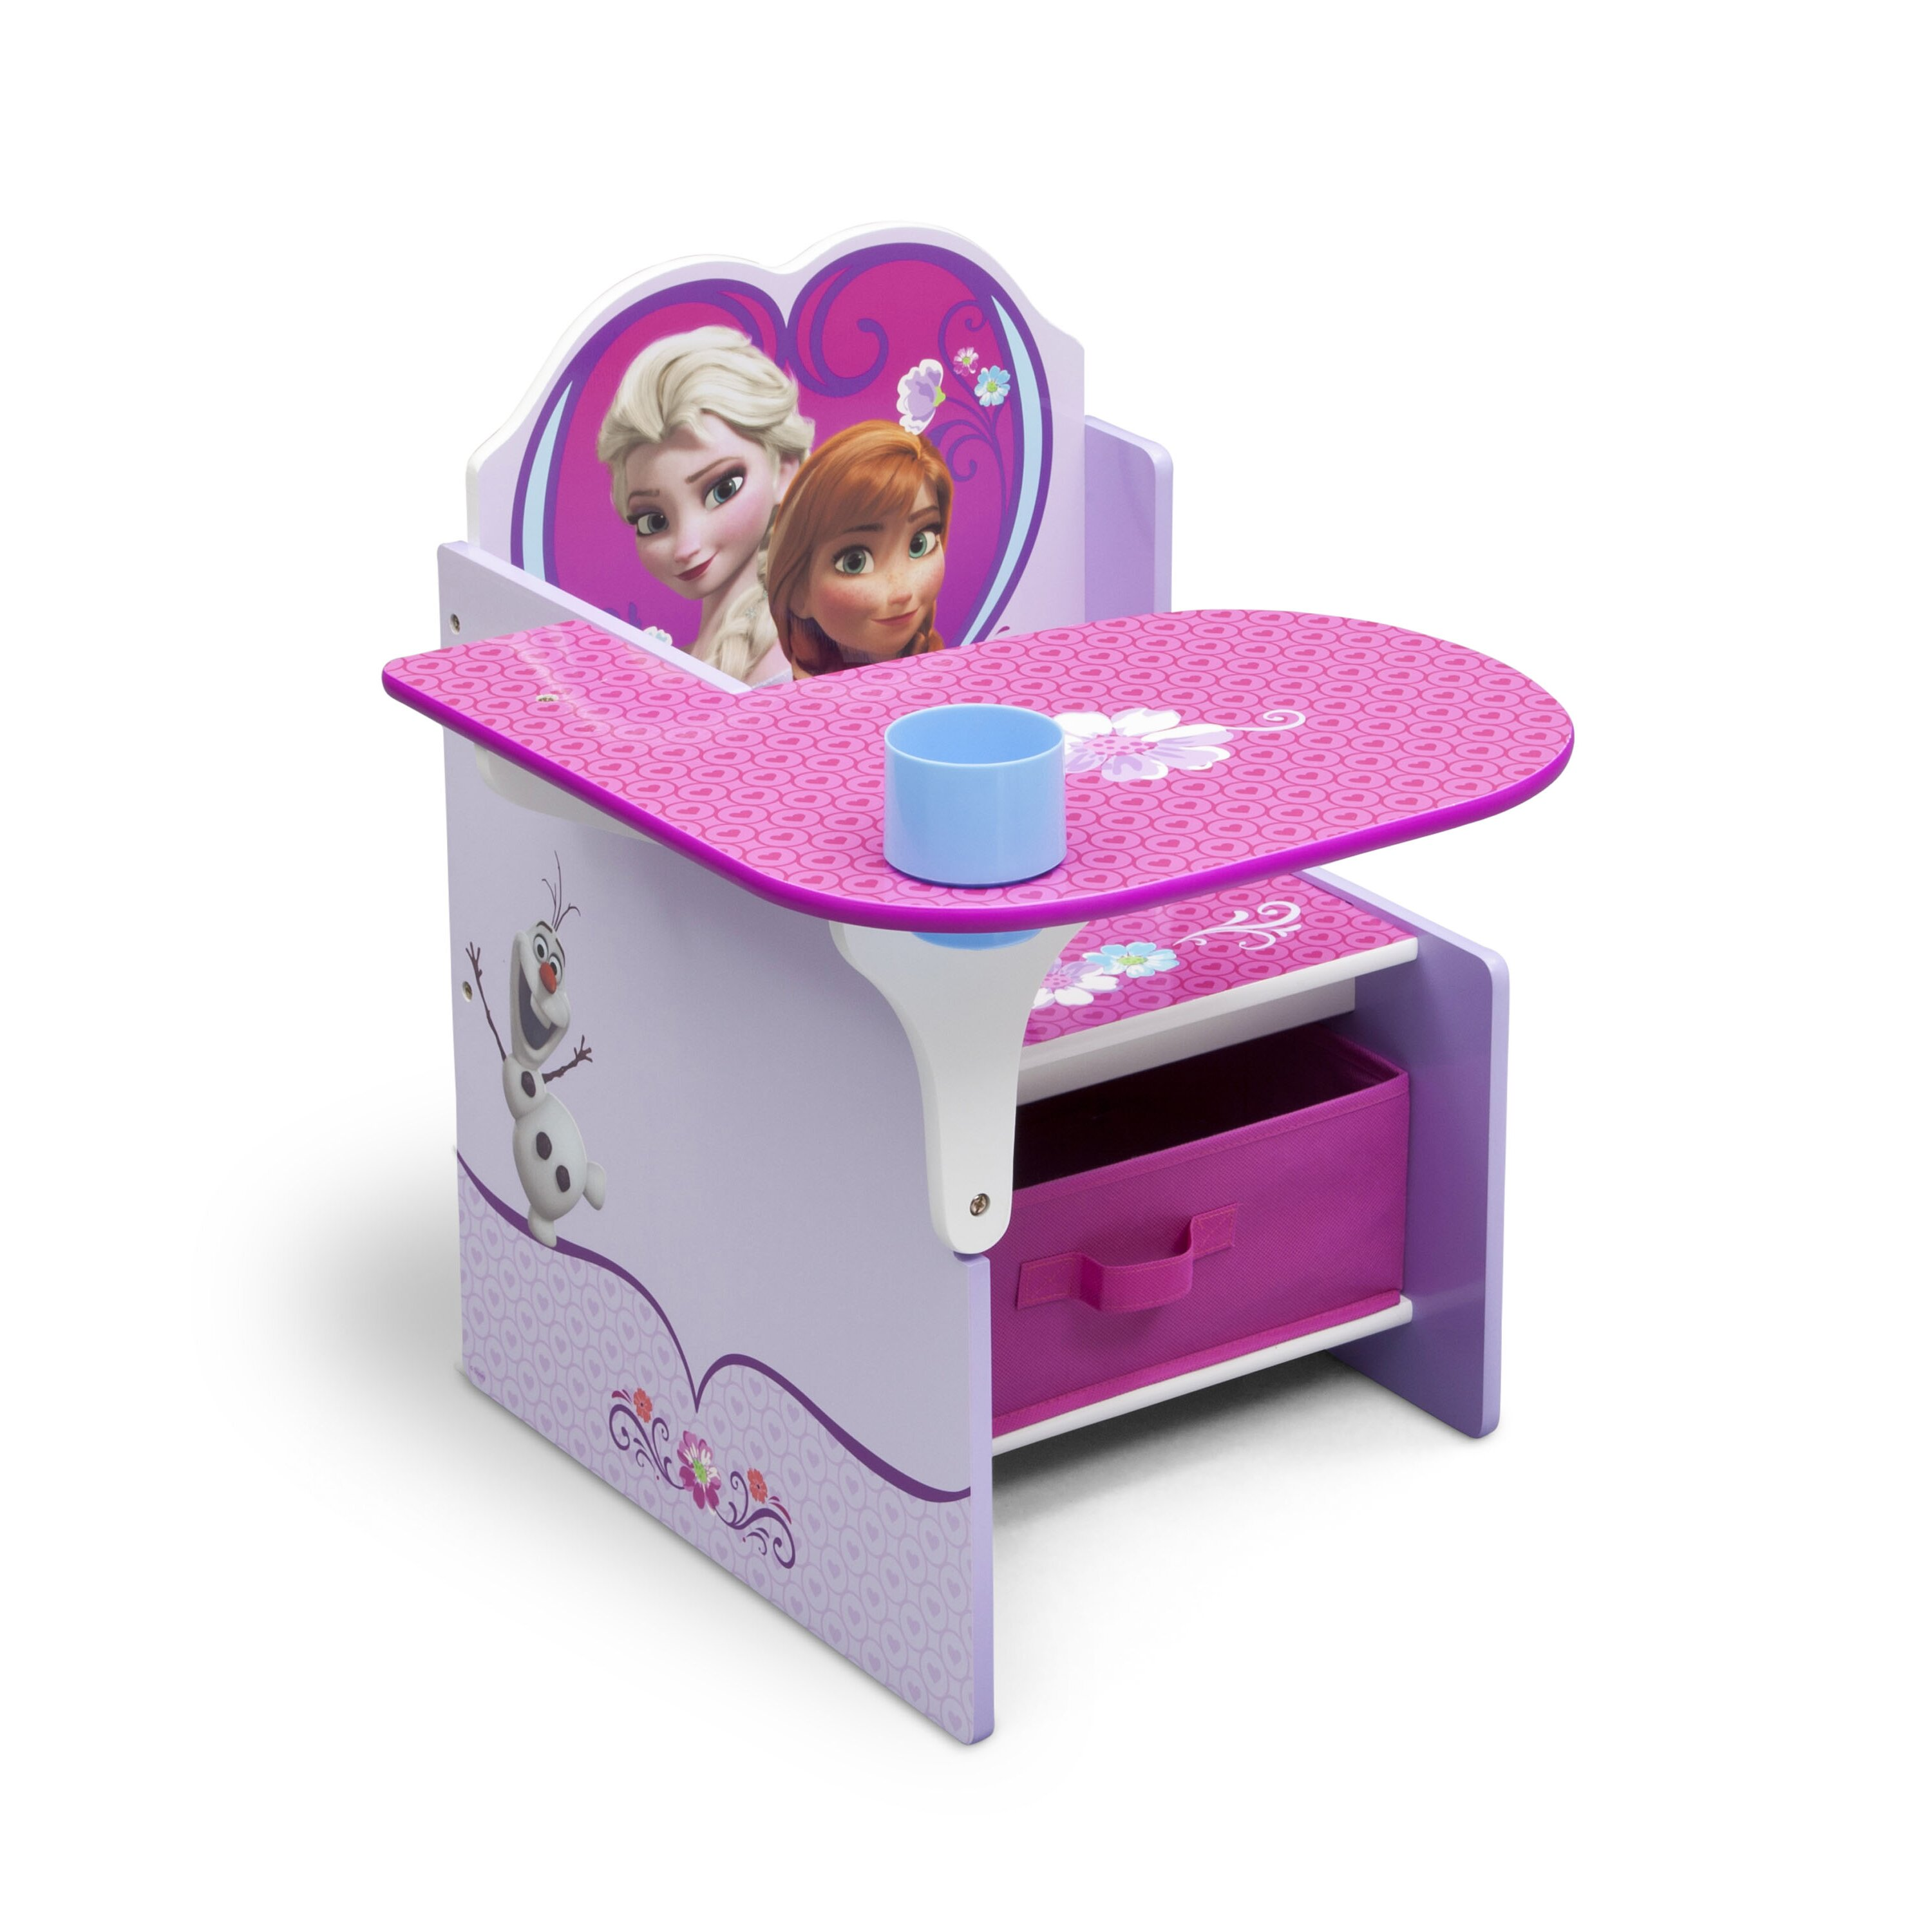 disney frozen kids desk chair with storage compartment and cup holder wayfair. Black Bedroom Furniture Sets. Home Design Ideas